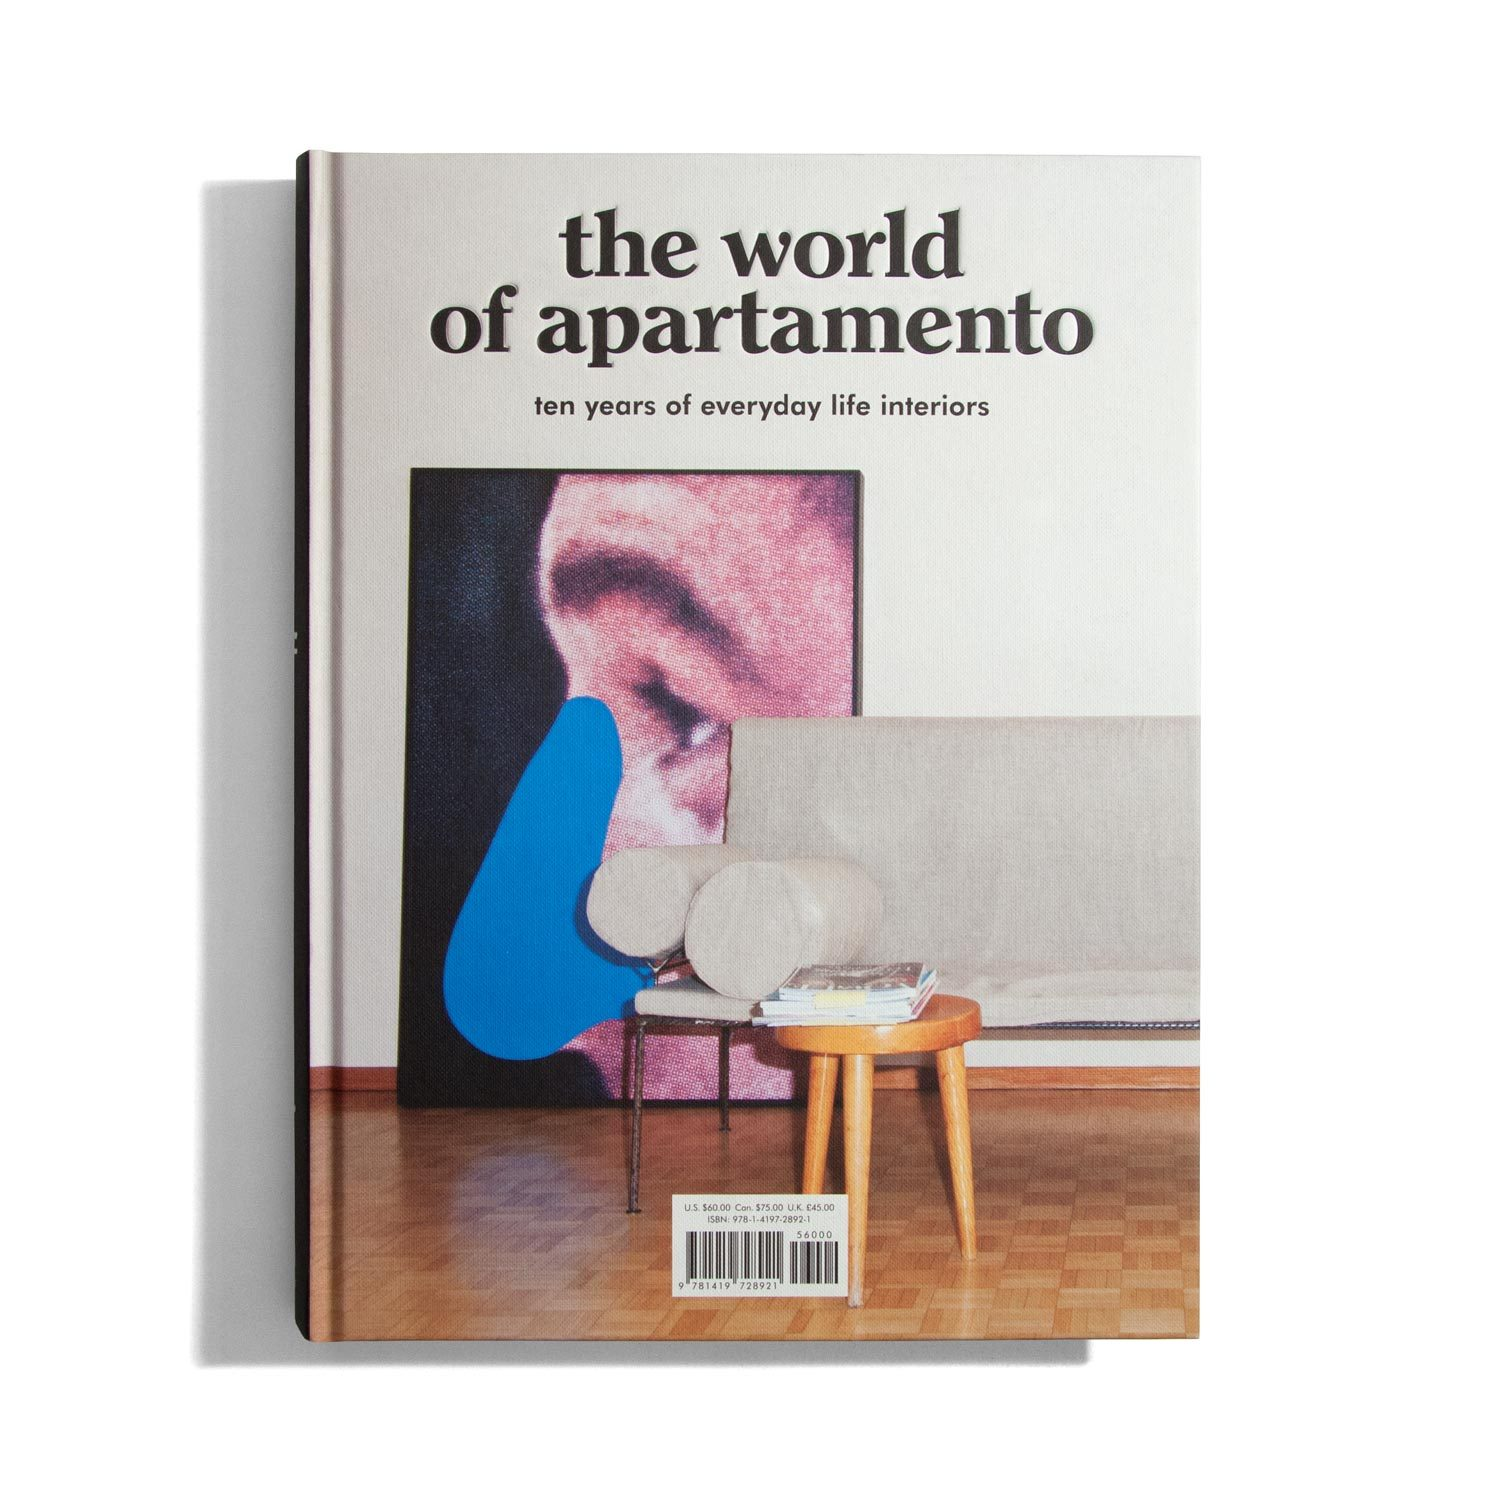 The World of Apartamento